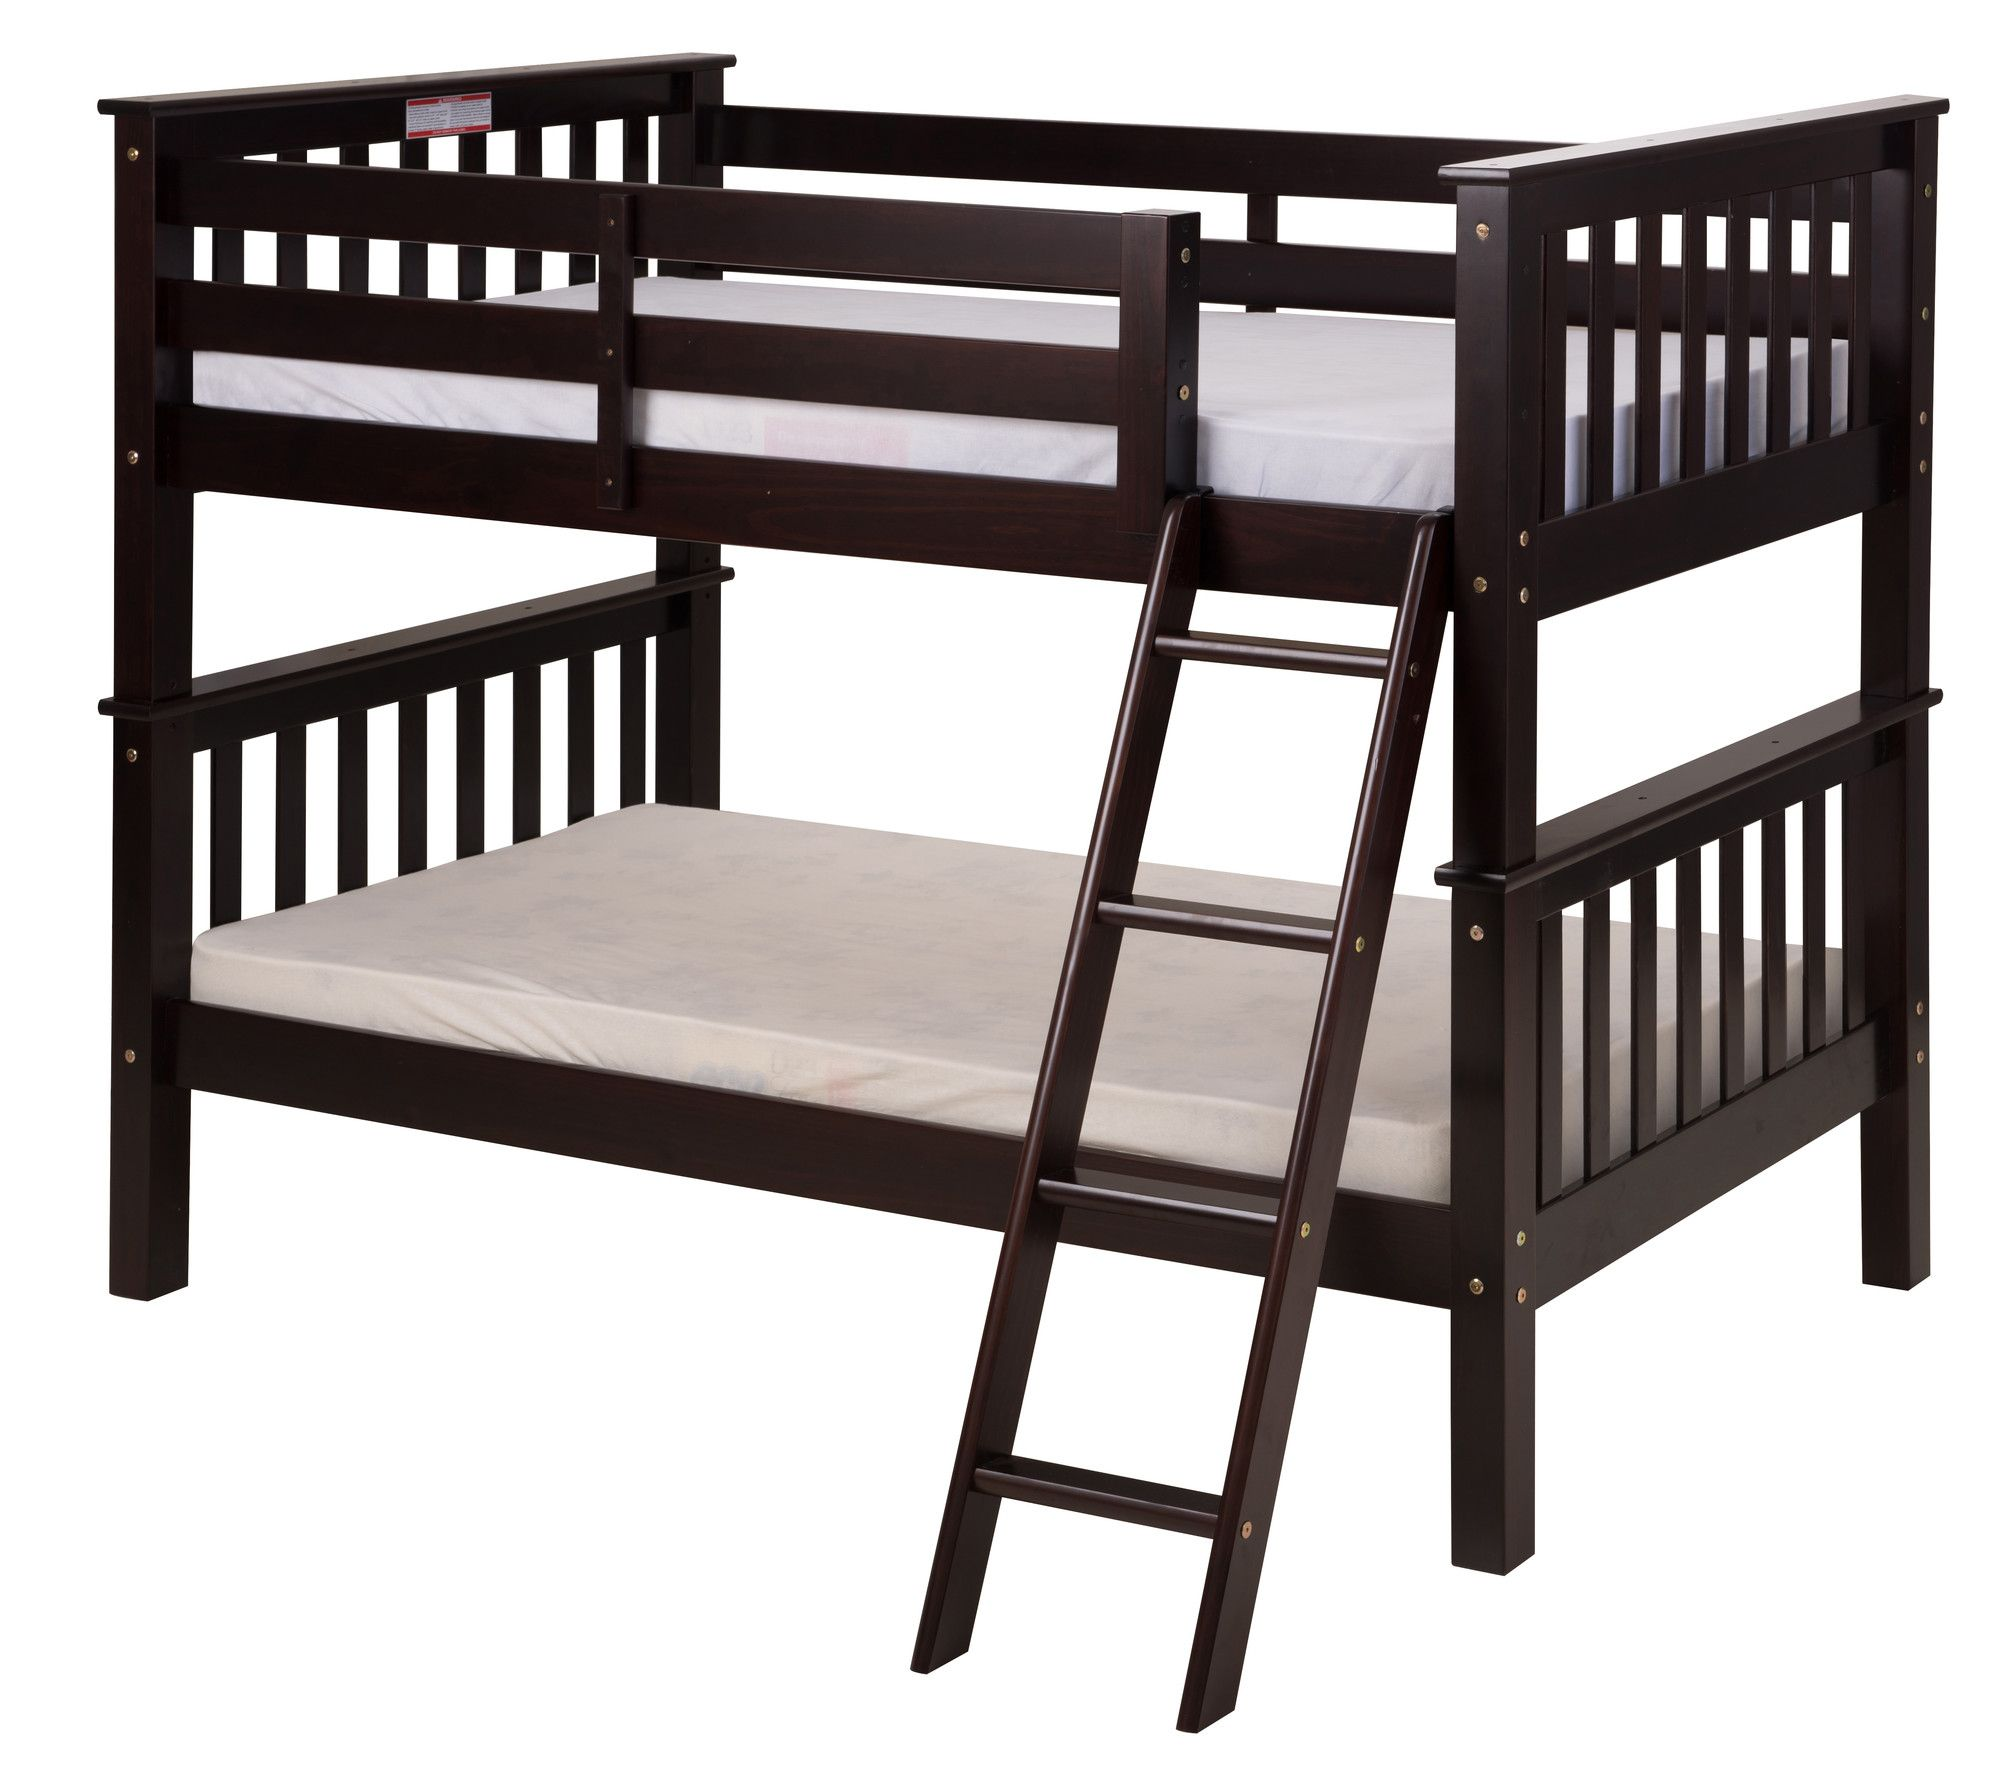 Metal loft bed with desk underneath  Santa Fe Mission Twin Bunk Bed  Products  Pinterest  Bunk bed